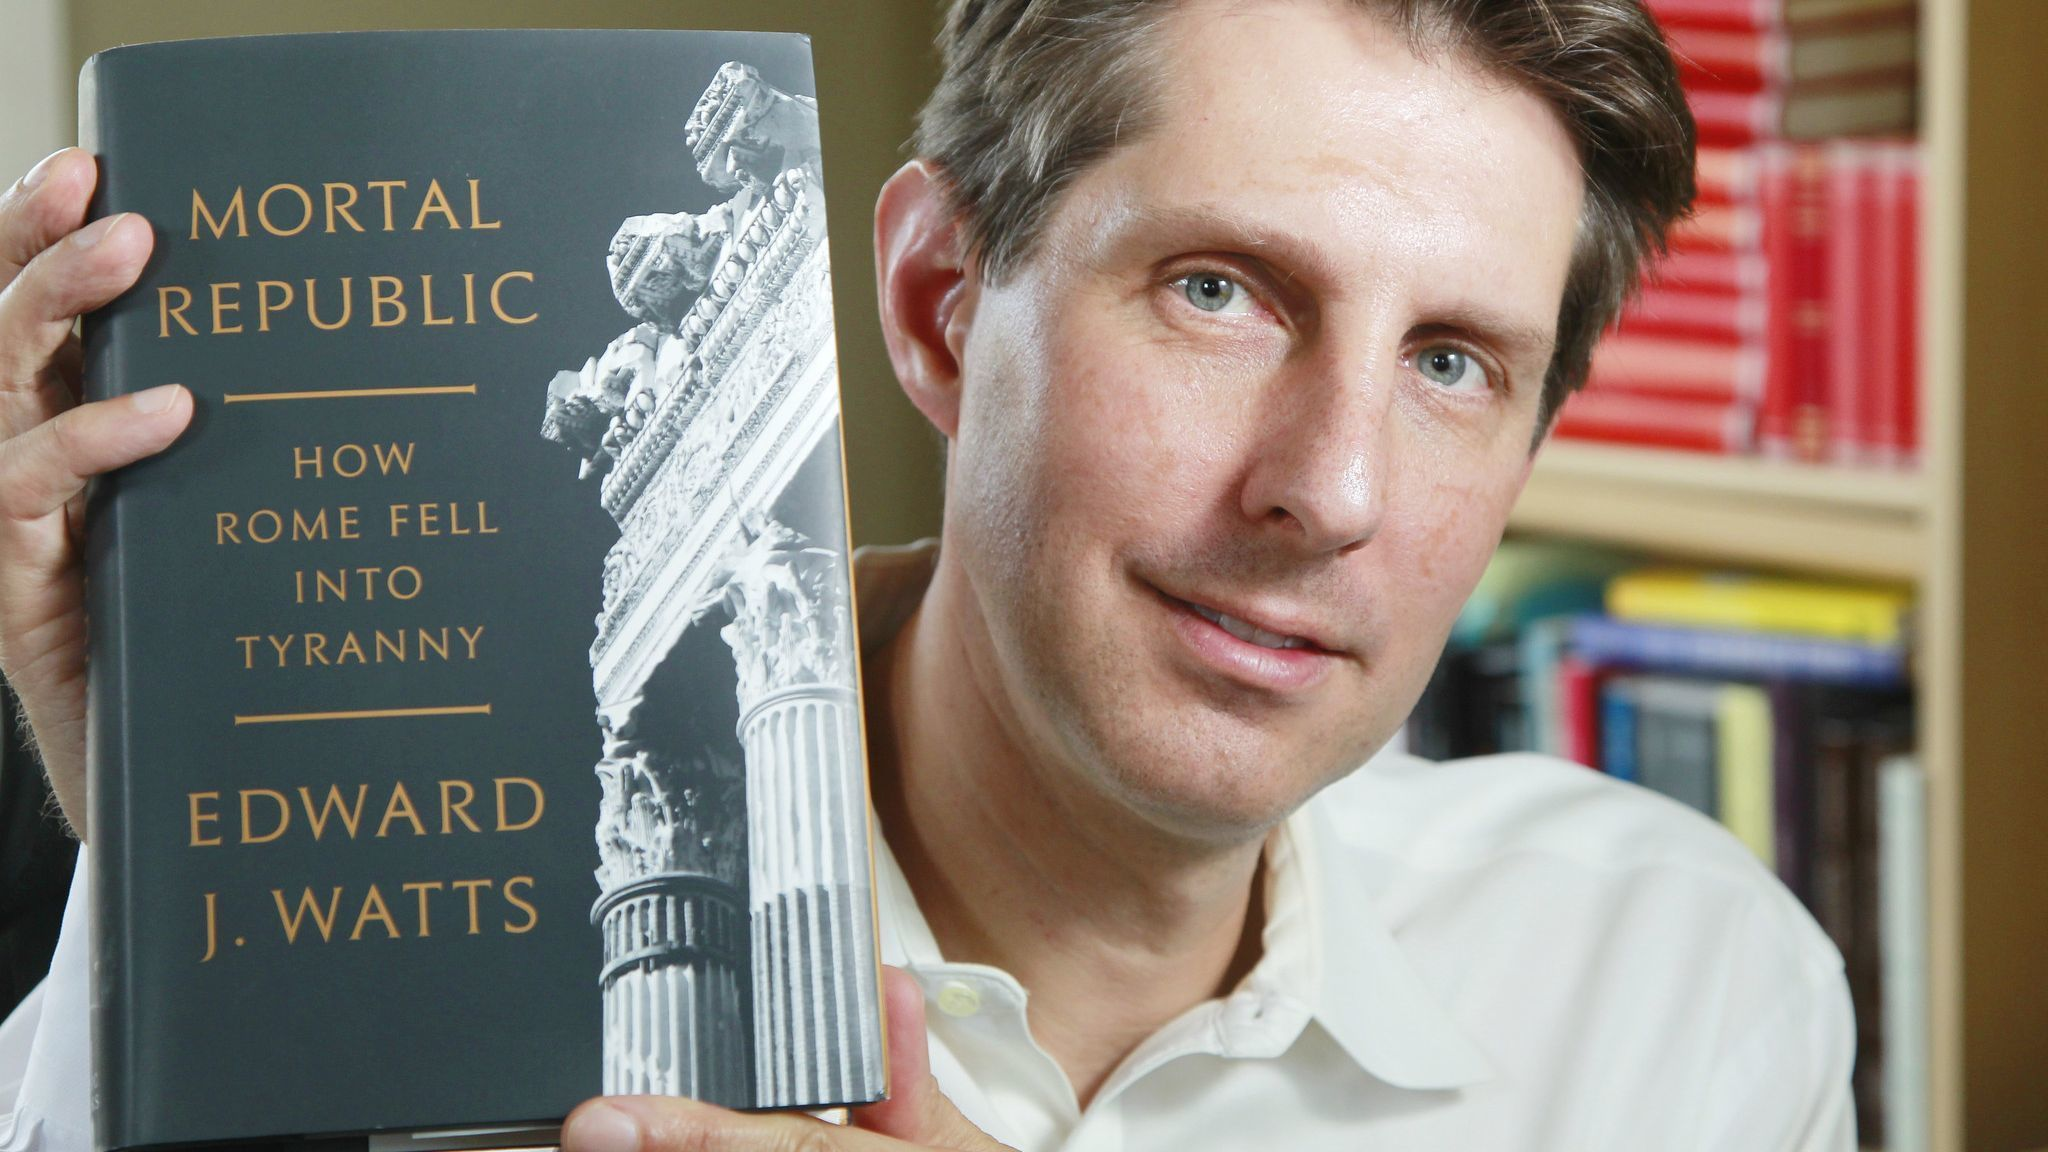 UC San Diego history prof's book on fall of Rome's democracy draws parallels to today